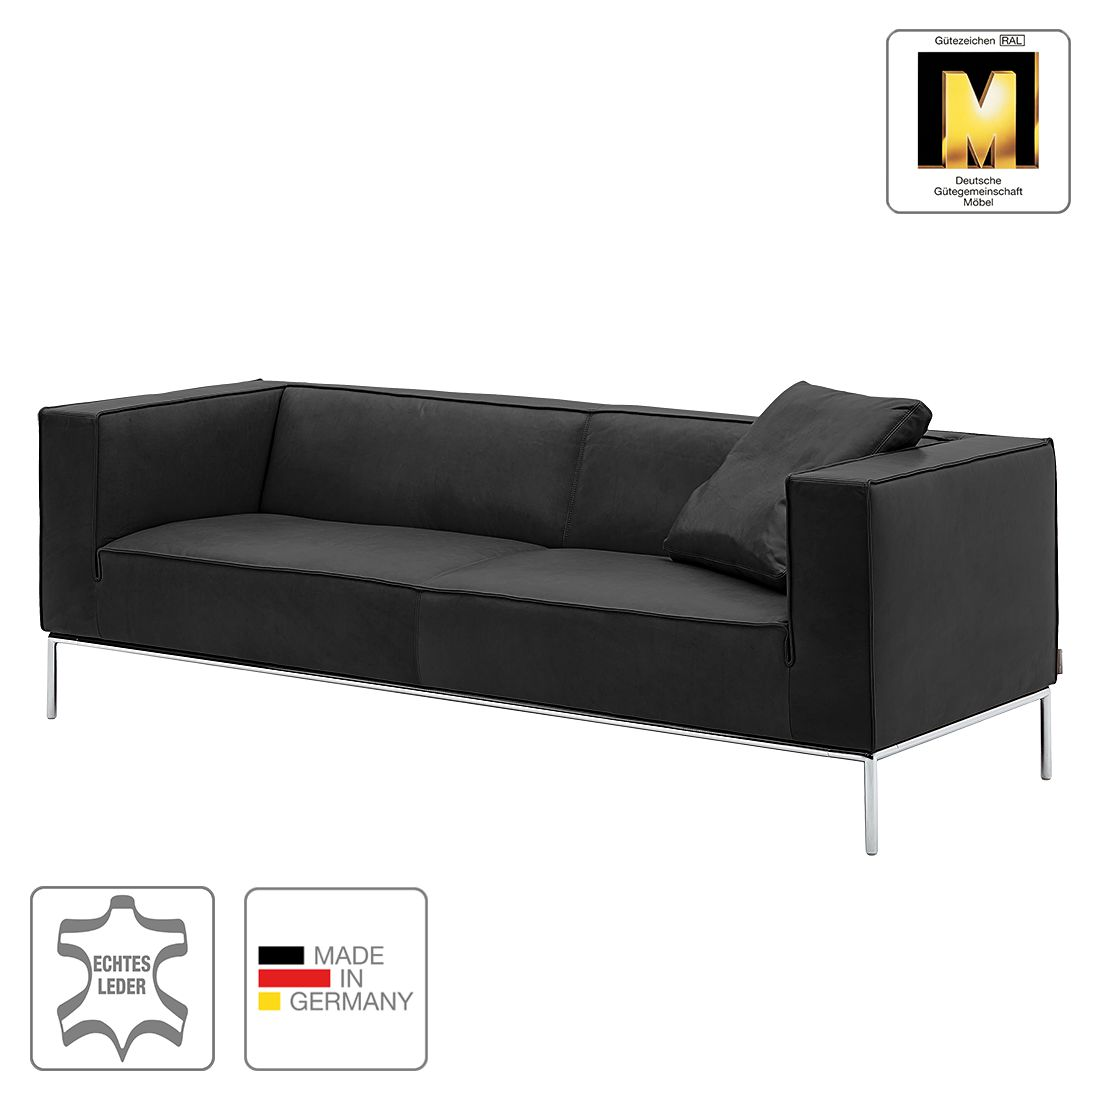 sofa greg 3 sitzer echtleder anthrazit 1 kissen machalke polsterwerkst tten g nstig. Black Bedroom Furniture Sets. Home Design Ideas